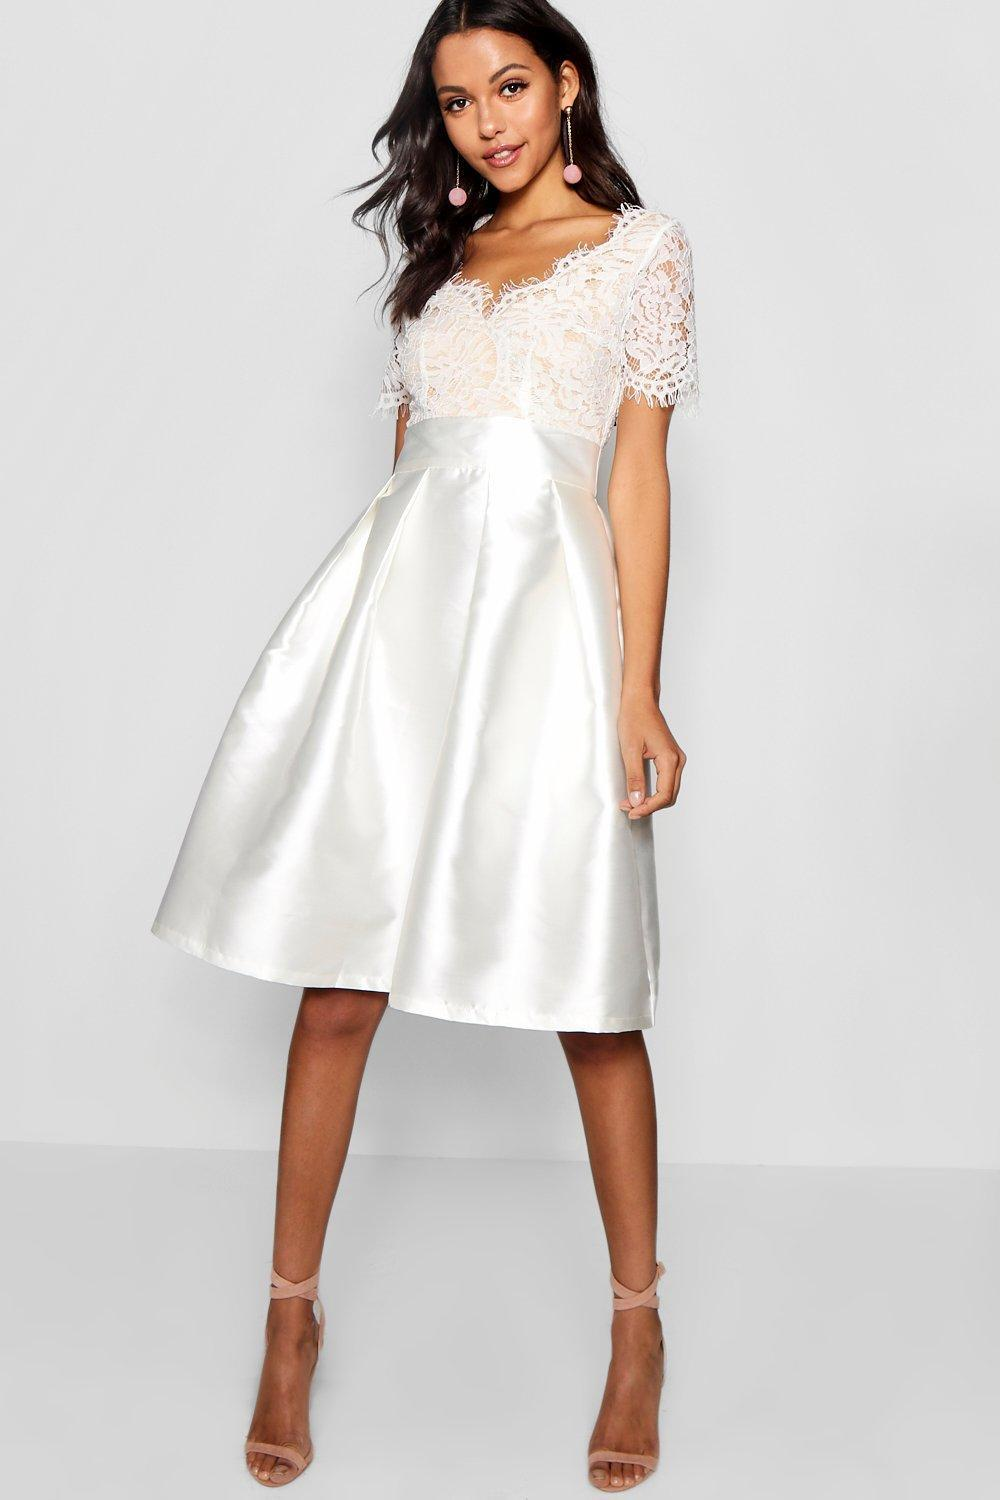 2402e12f4d68 Gallery. Previously sold at: Boohoo · Women's Skater Dresses Women's White  Cocktail Dresses